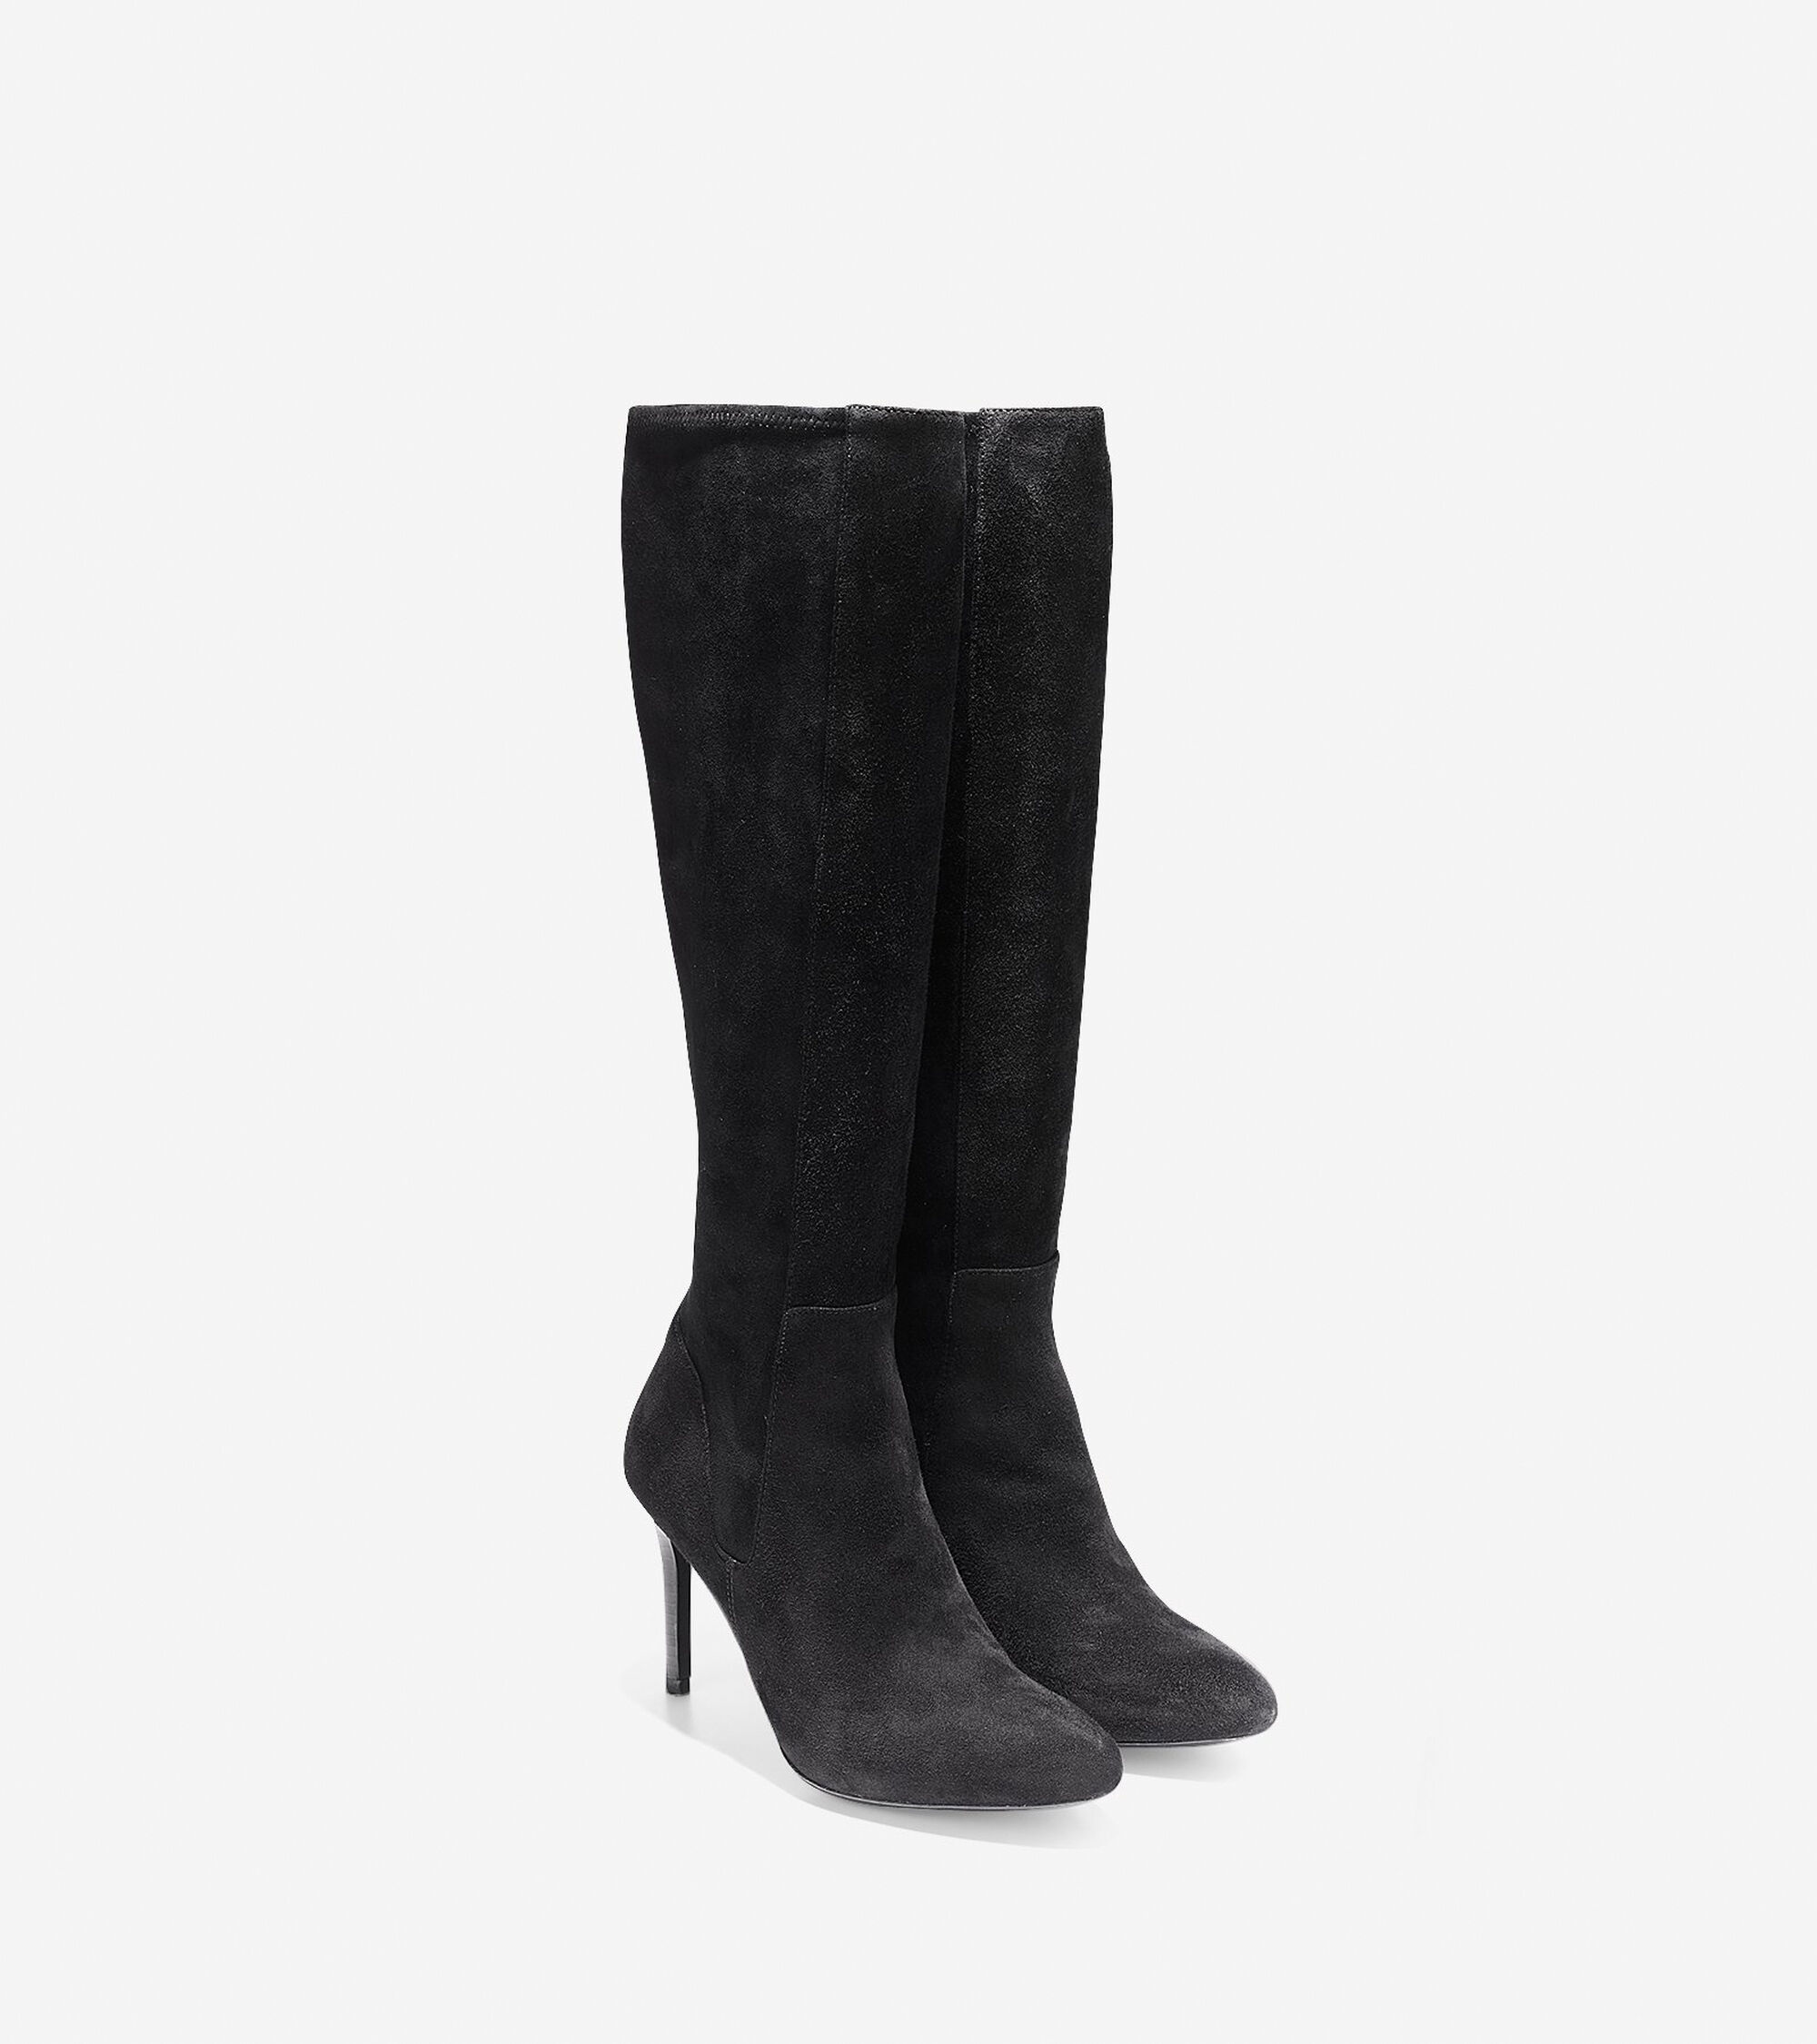 Women\'s Narelle Tall Boots (85mm) in Black Suede | Cole Haan